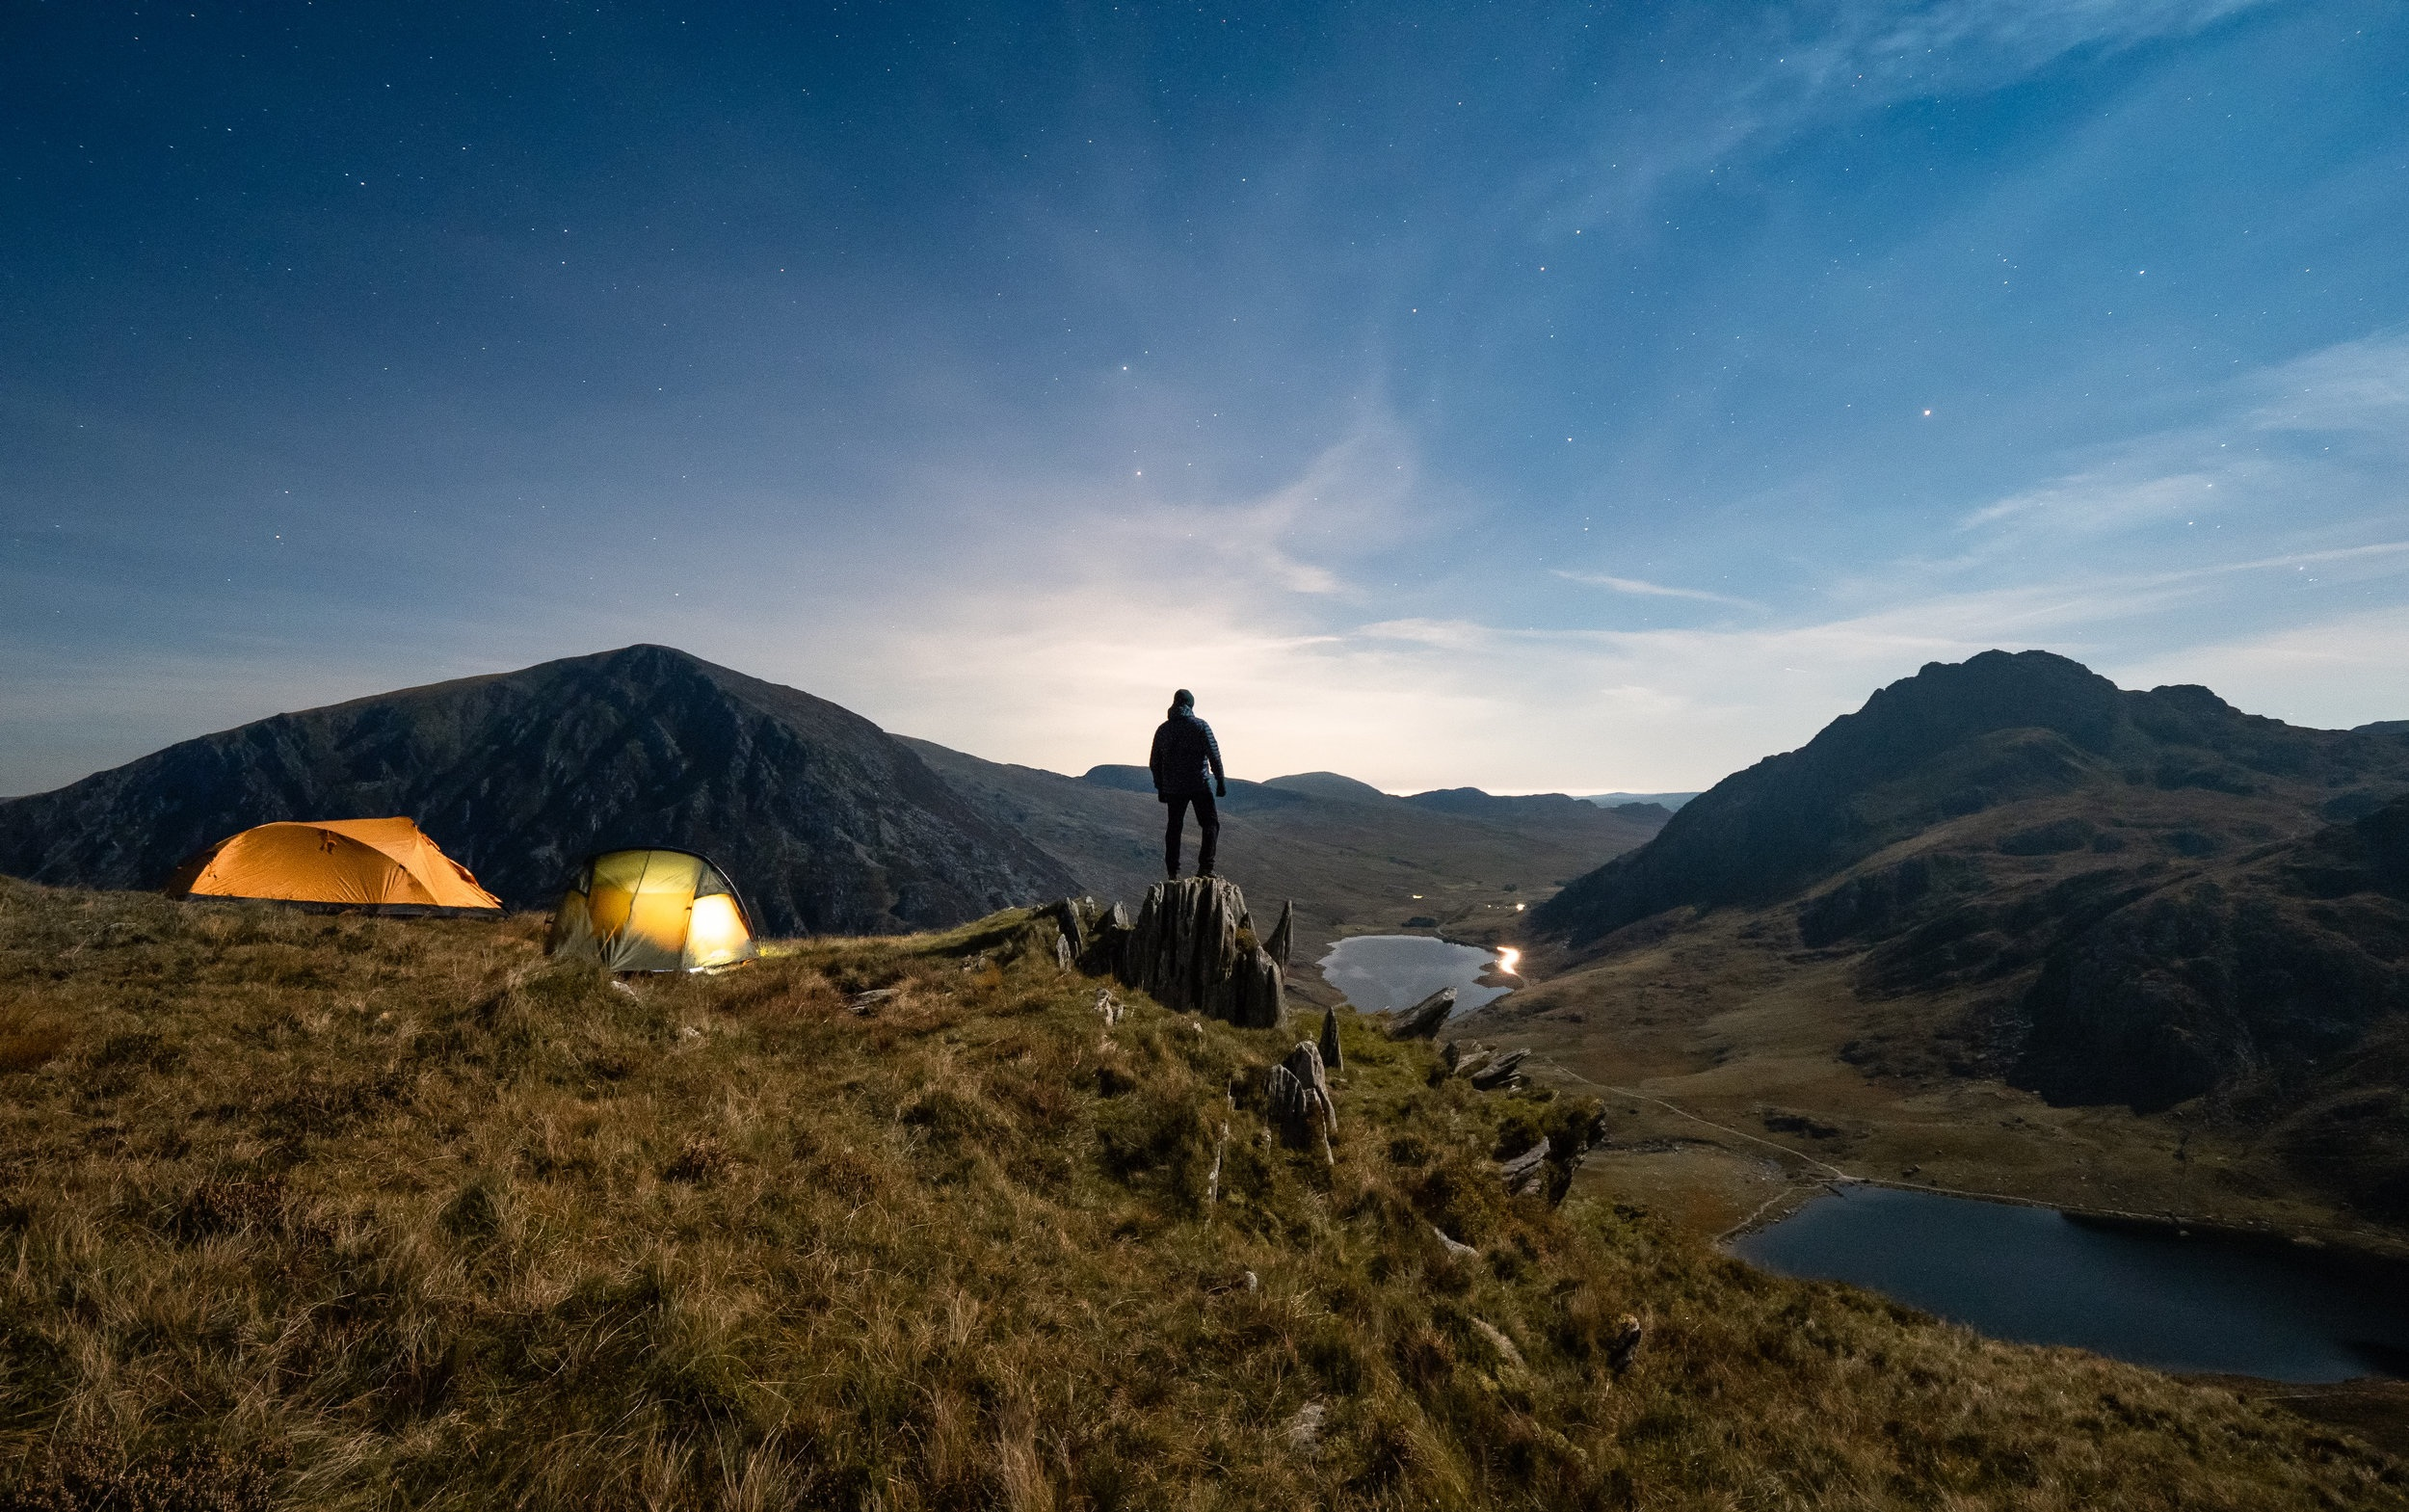 Snowdonia wild camp on the side of Y Garn under a moonlit sky.